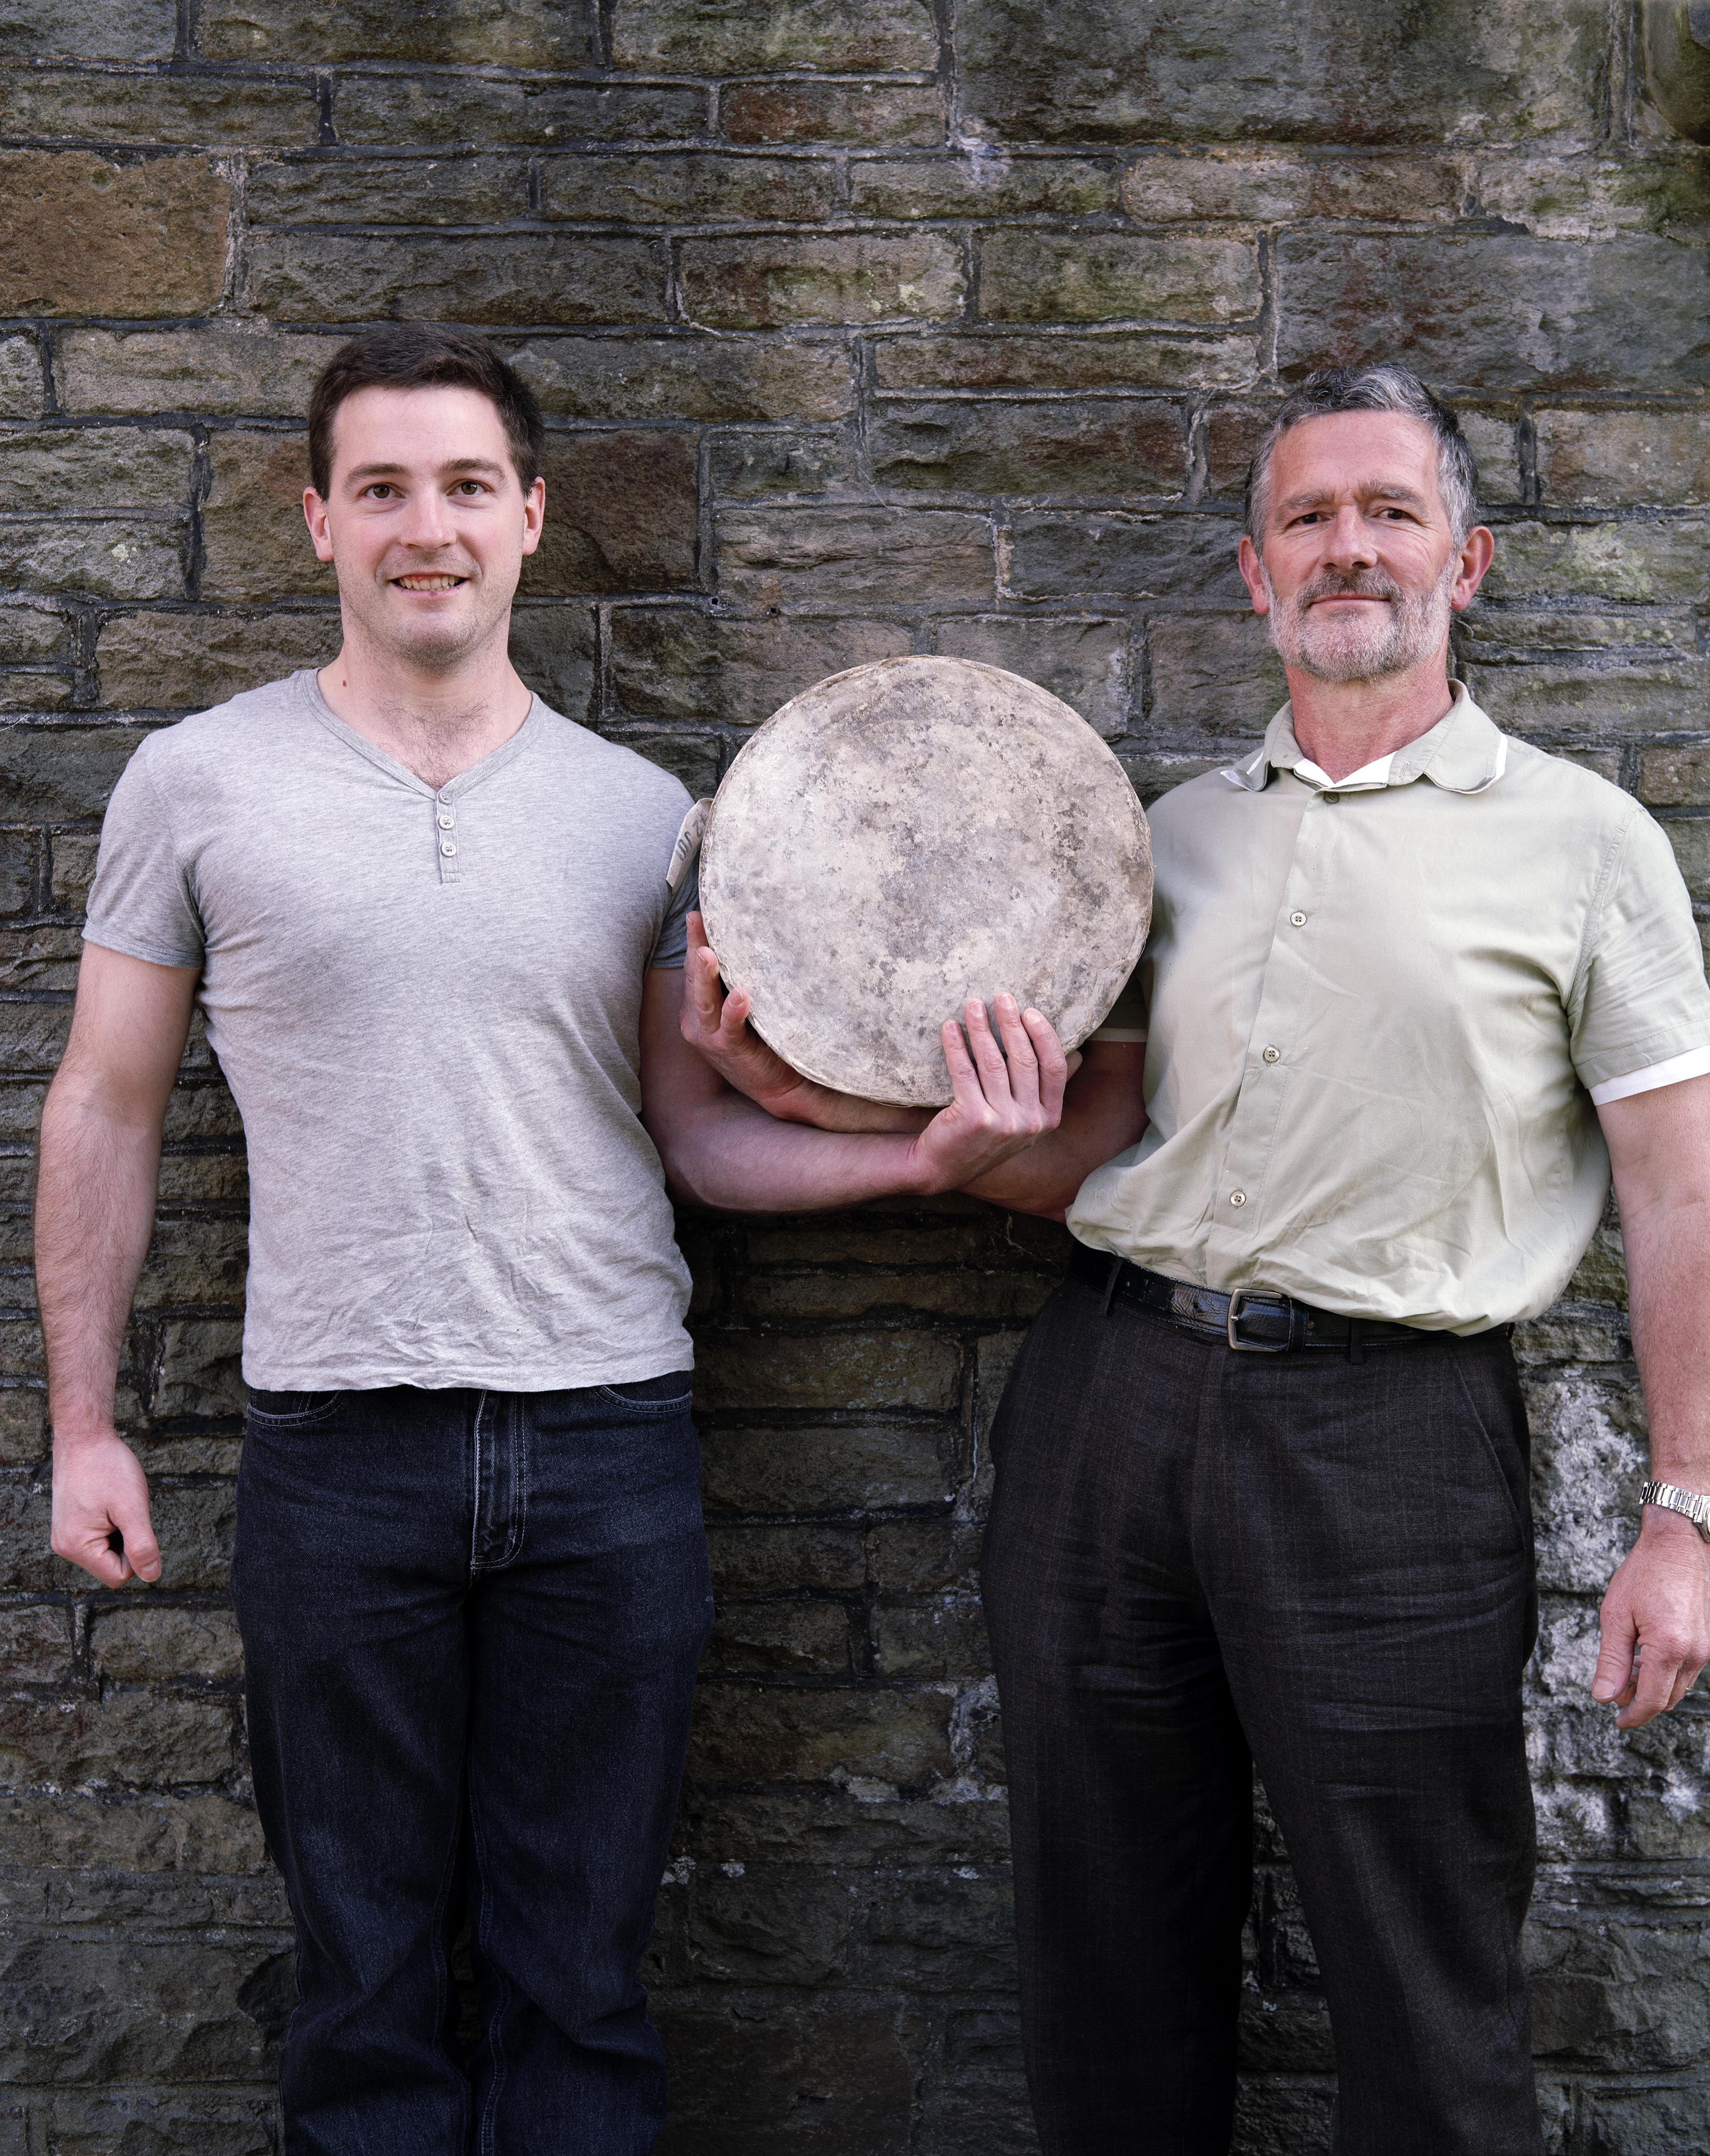 Father's Day: A look at Cheesemaking Families